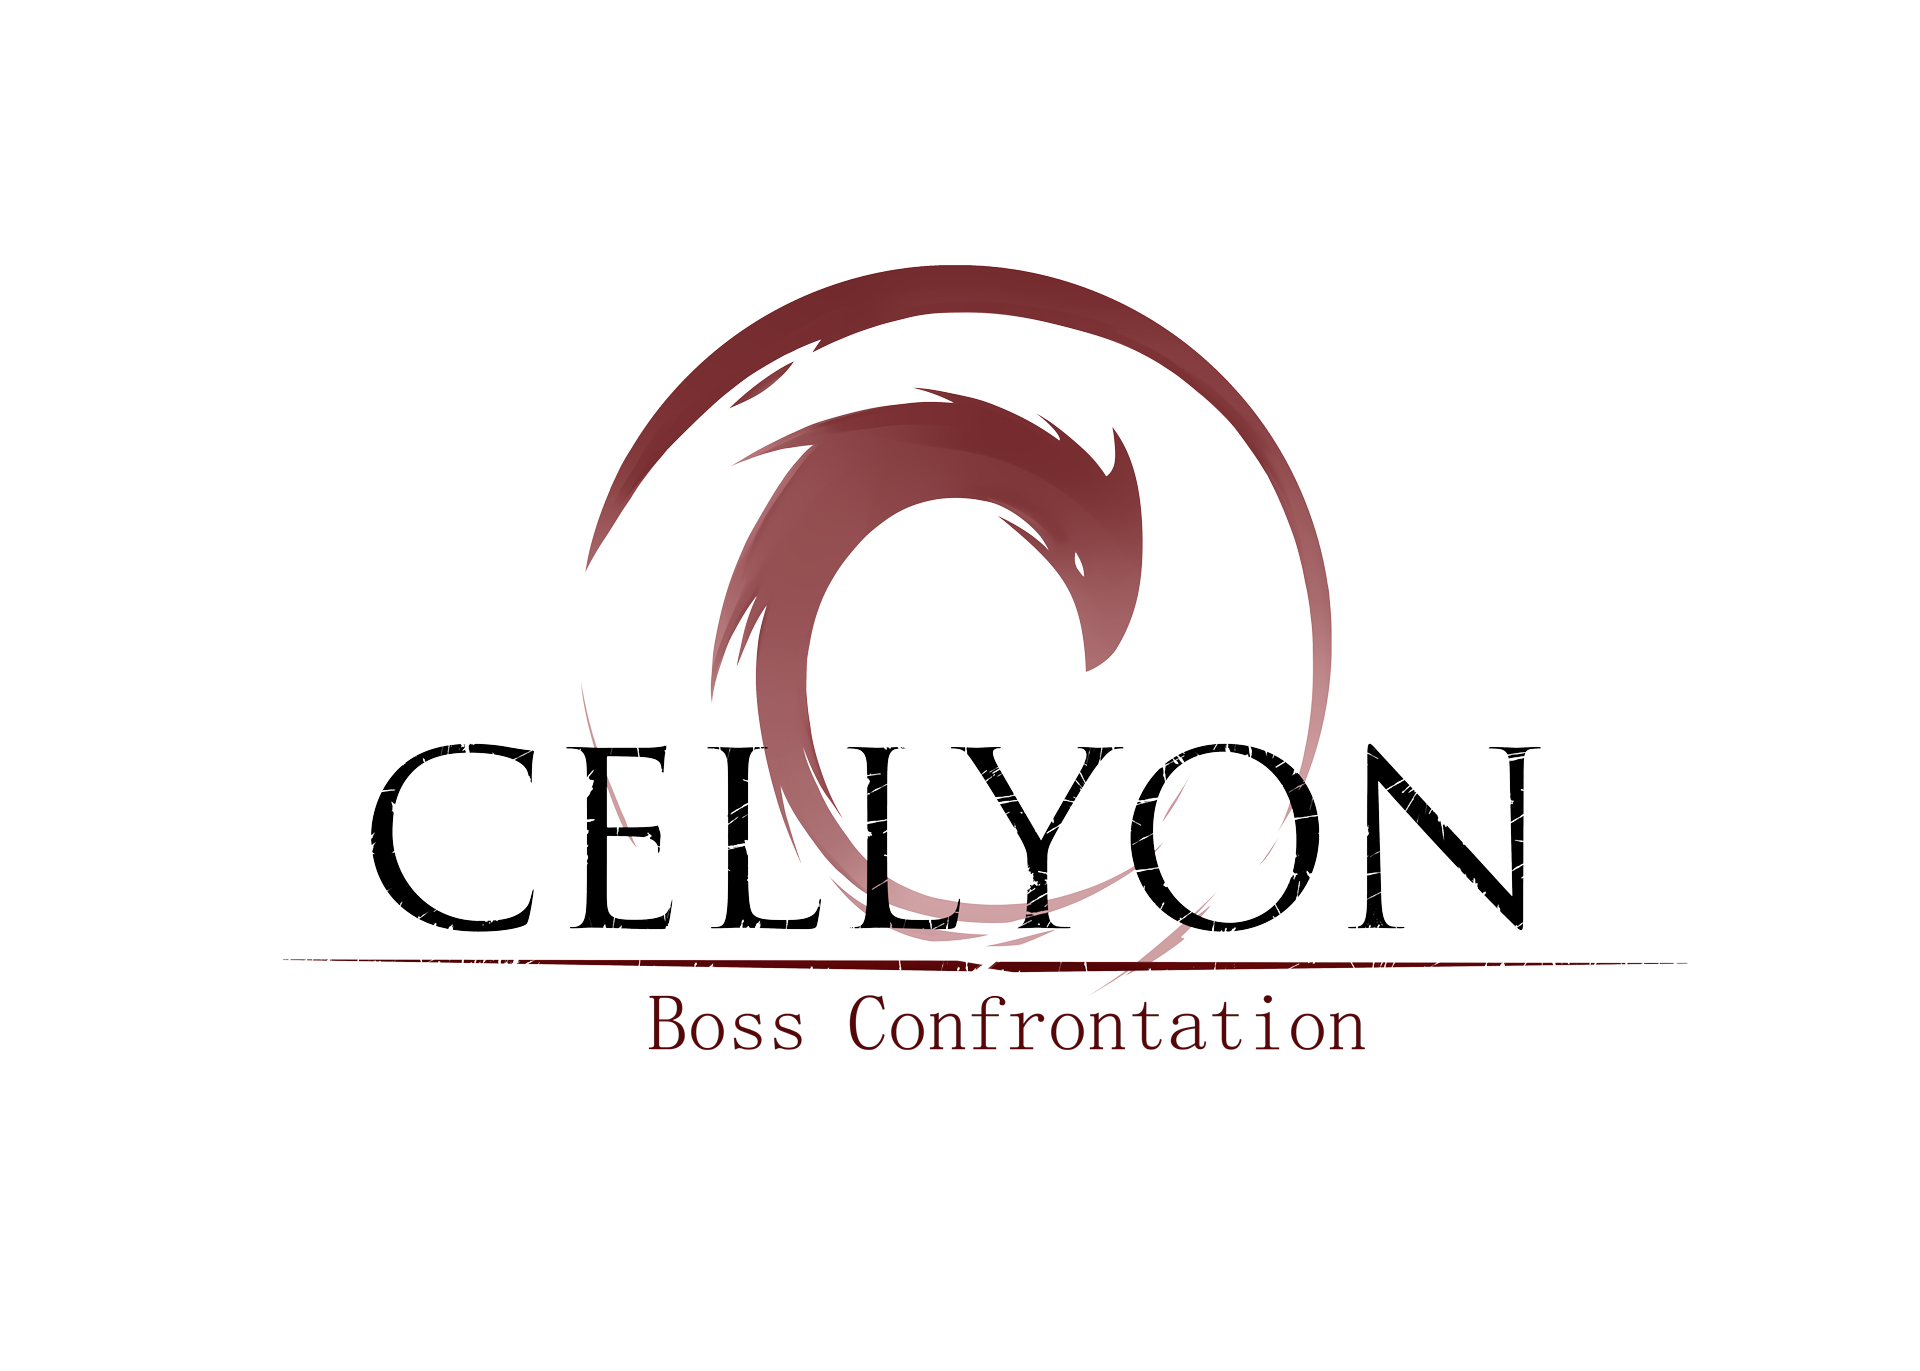 Cellyon Boss Confrontation logo